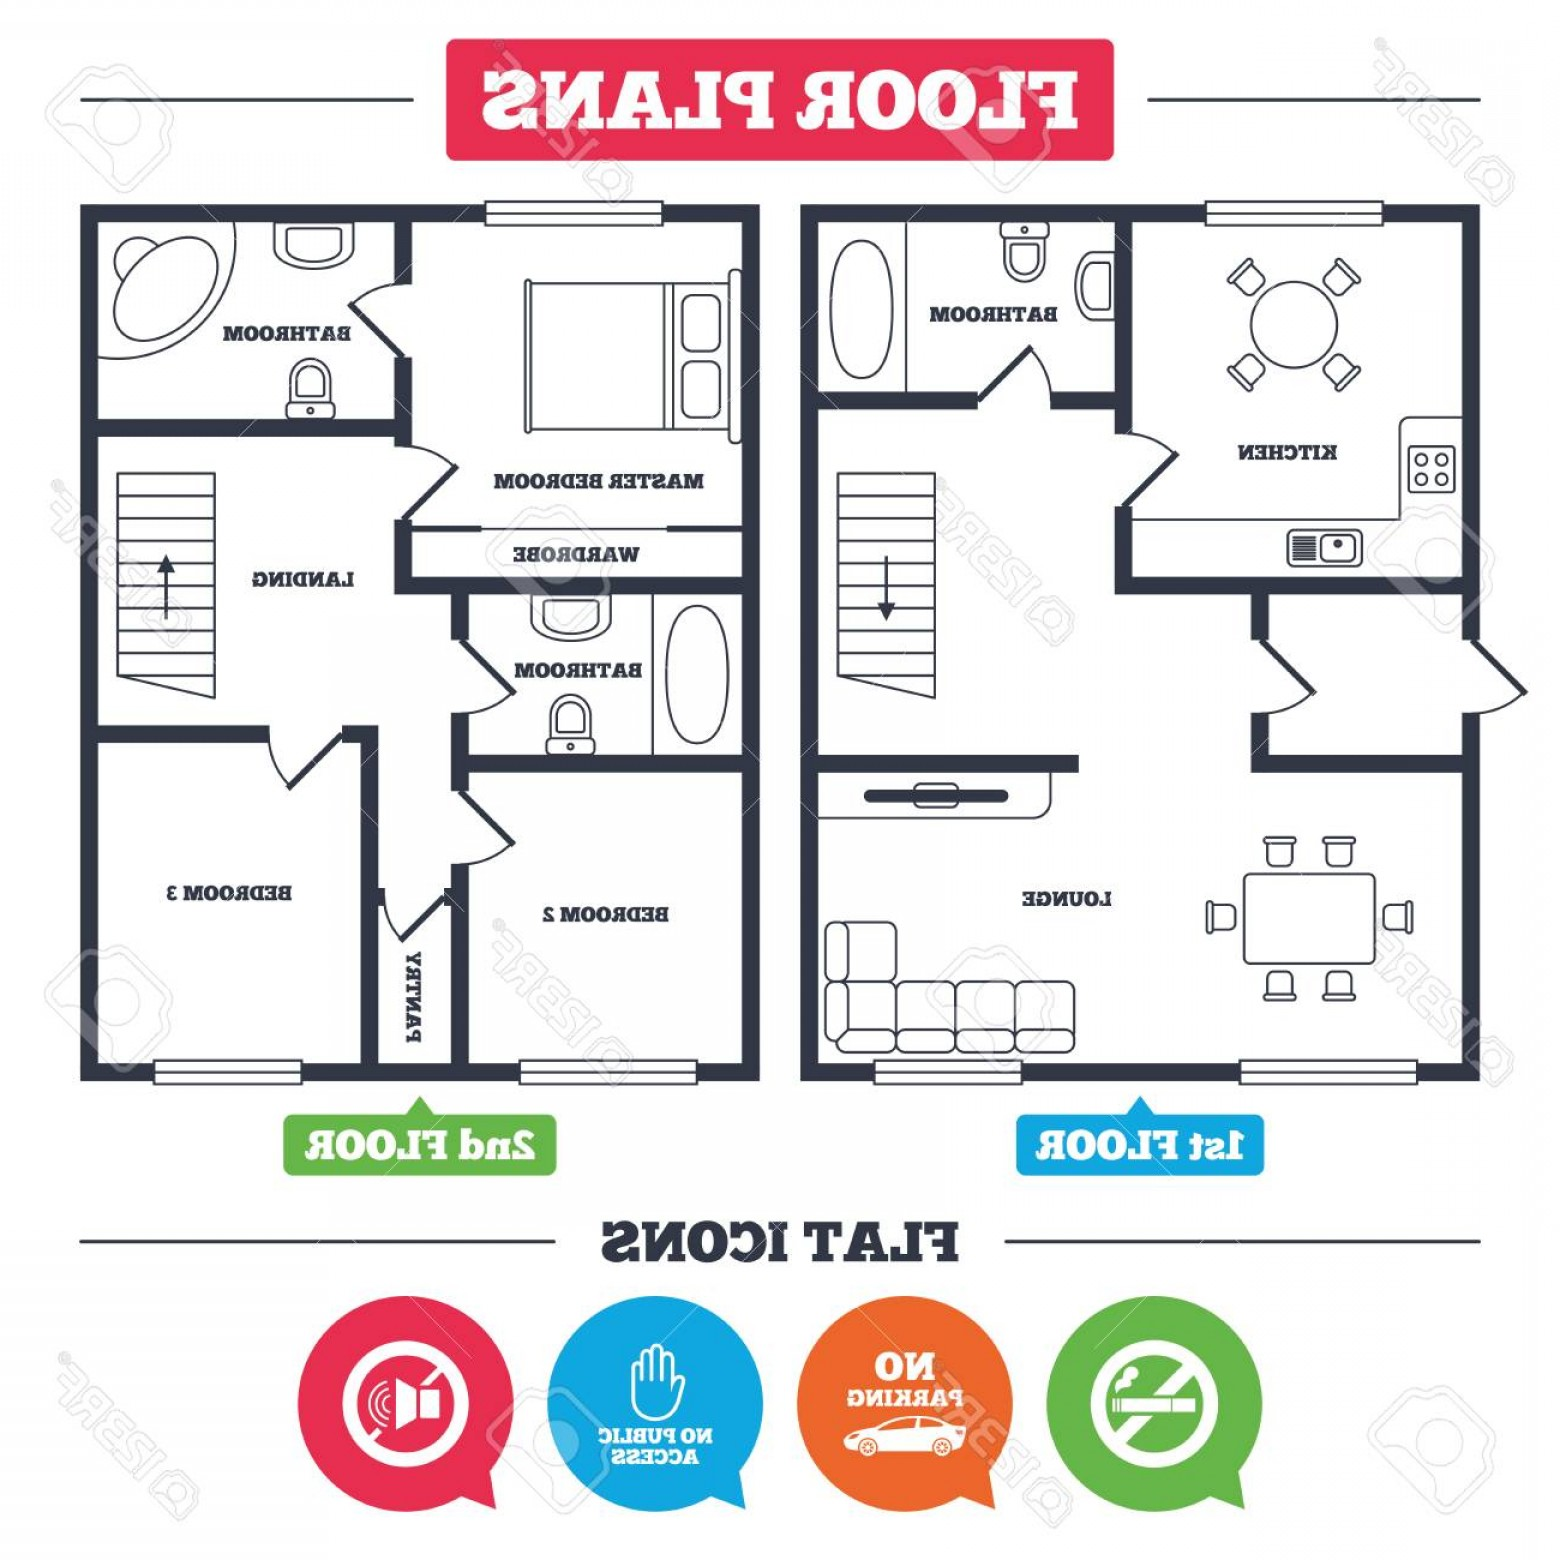 Public Floor Plan Vector: Photostock Vector Architecture Plan With Furniture House Floor Plan Stop Smoking And No Sound Signs Private Territory